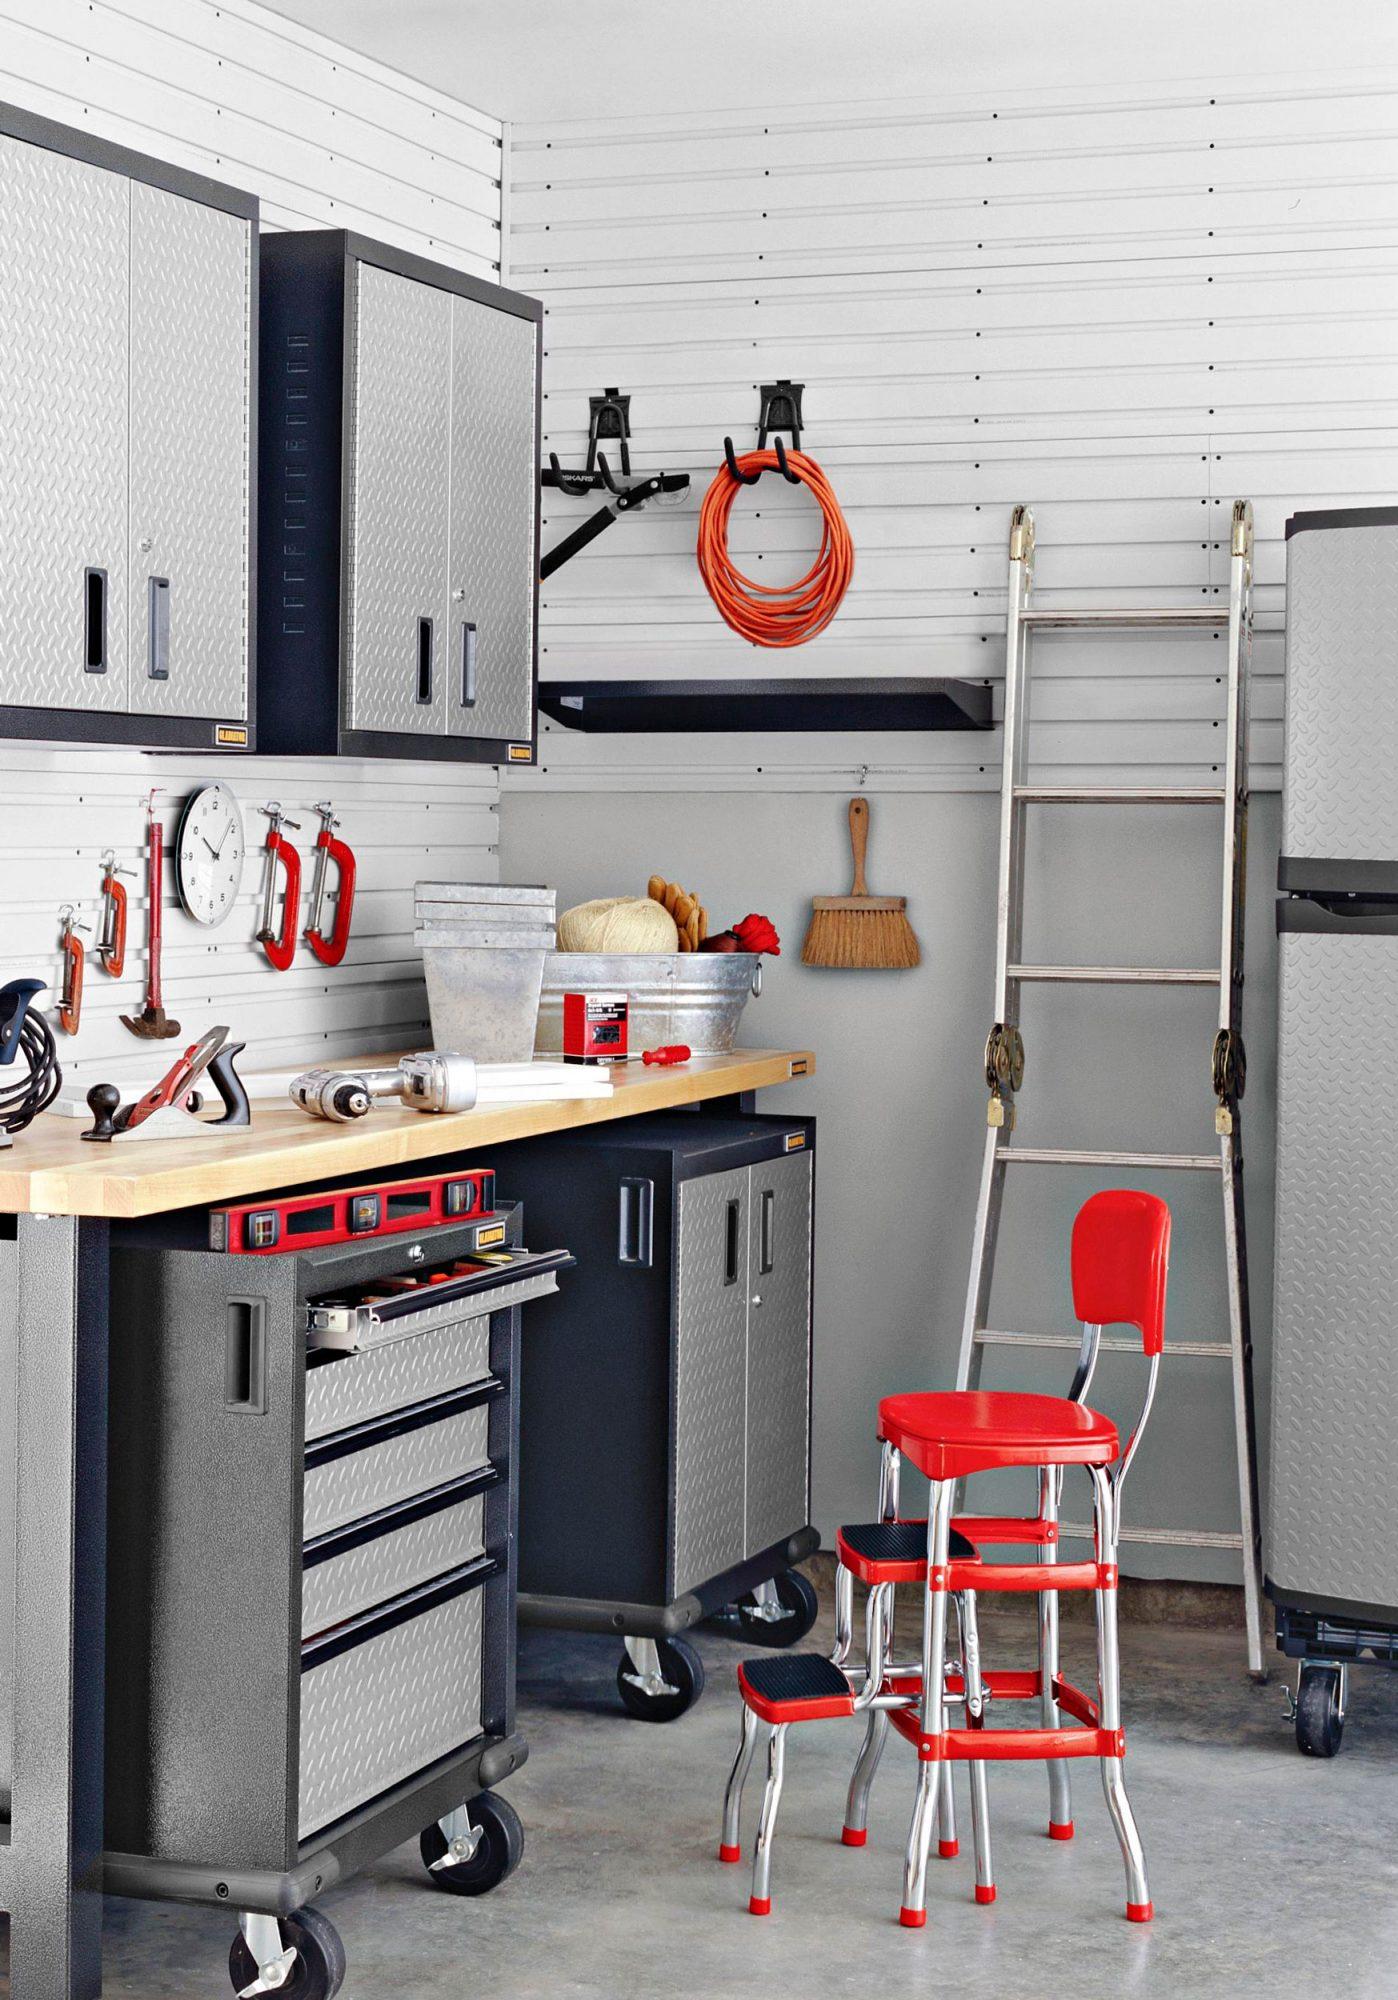 How to Transform Your Cluttered Garage